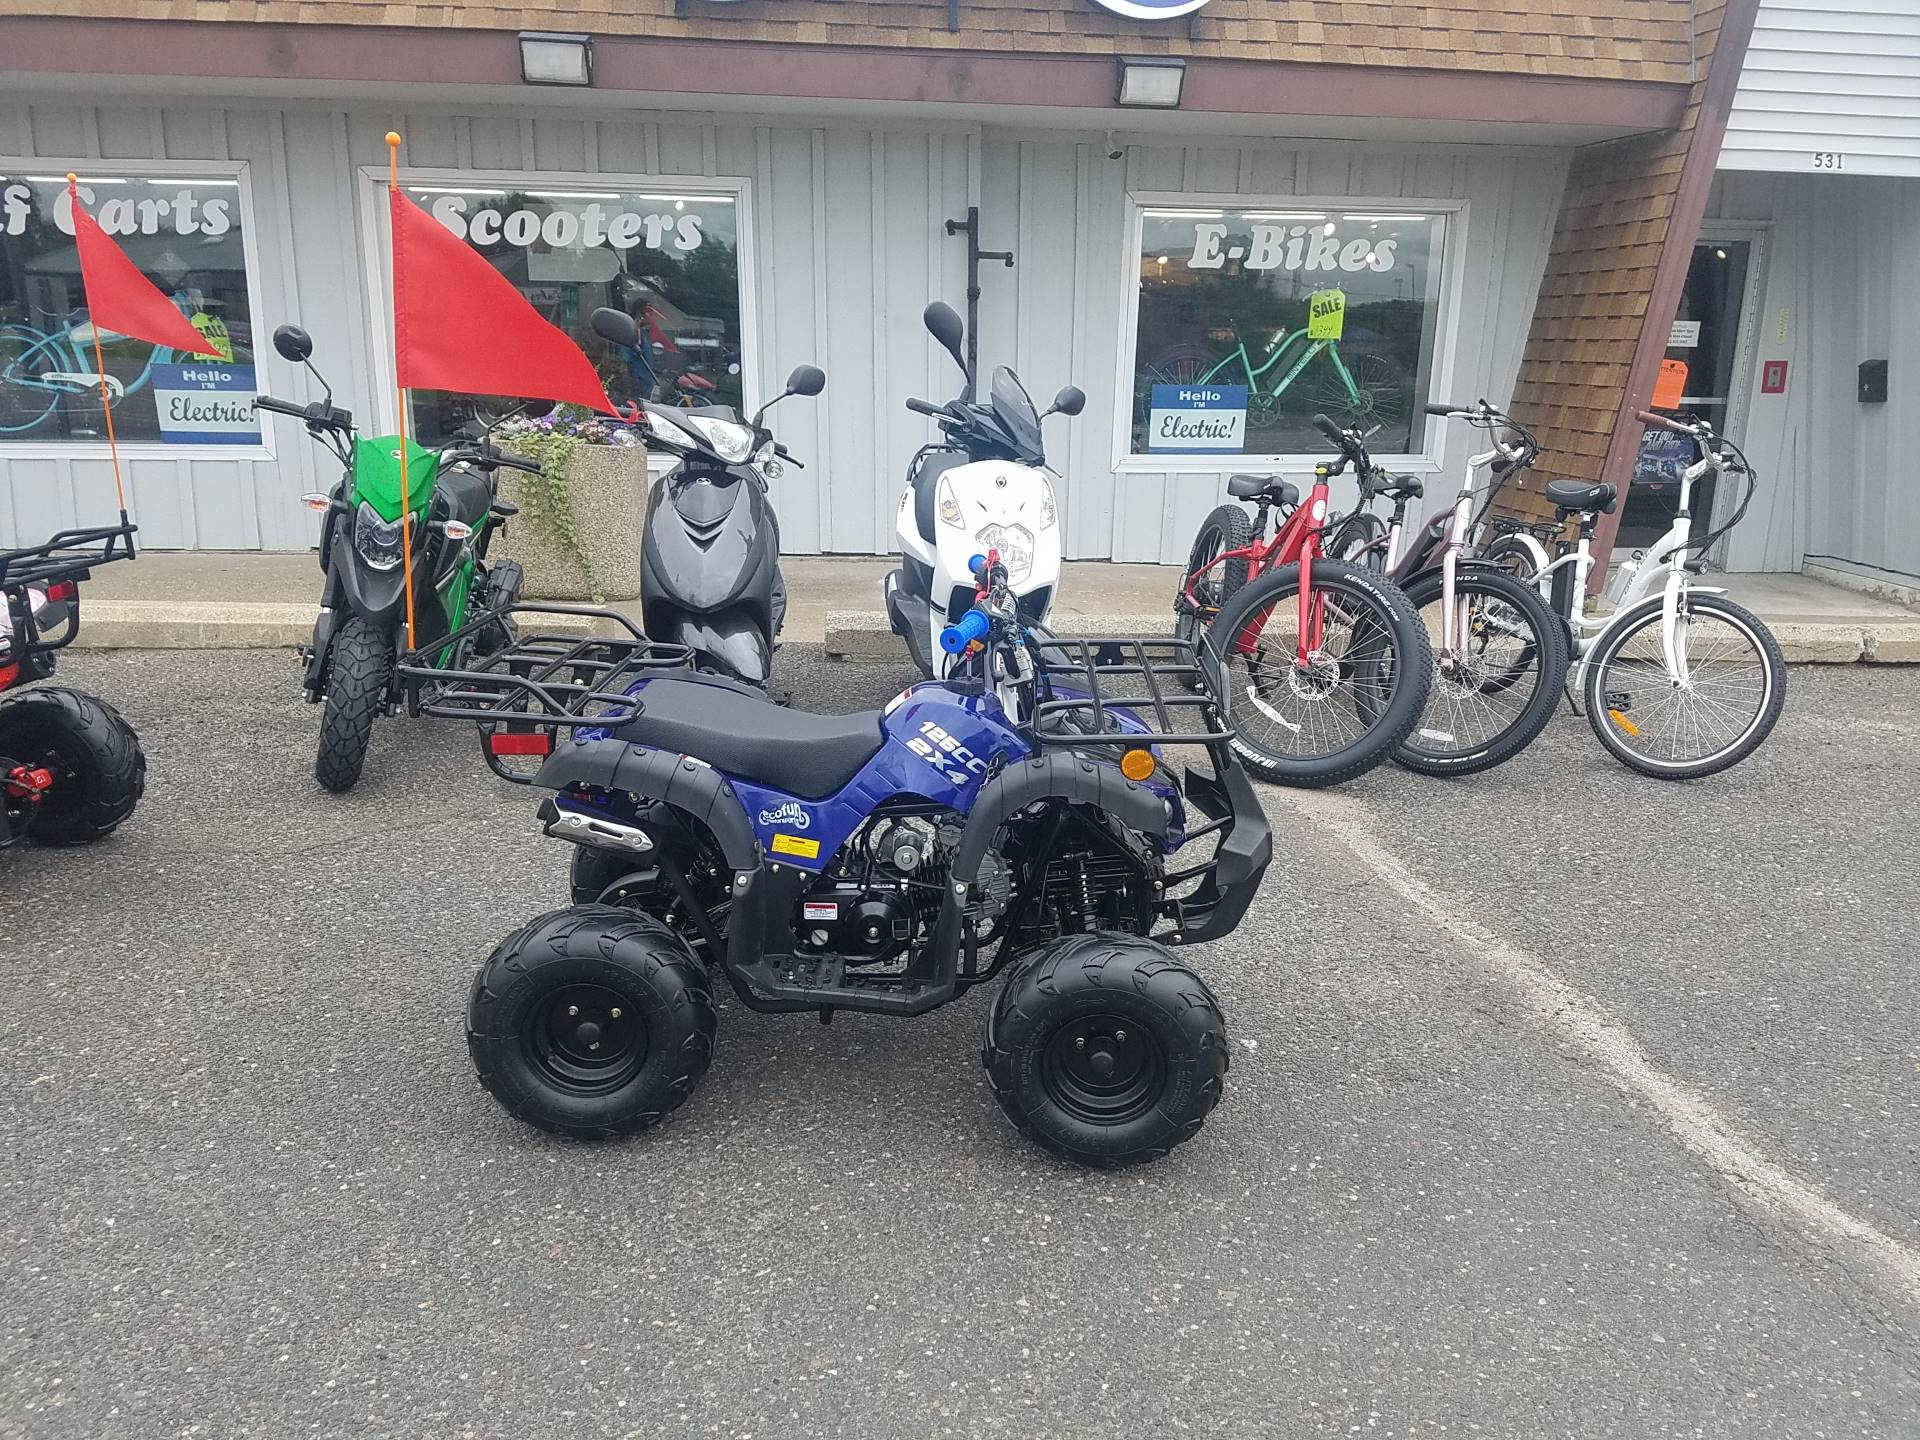 2020 Raytech Trooper 125 ATV in Forest Lake, Minnesota - Photo 3